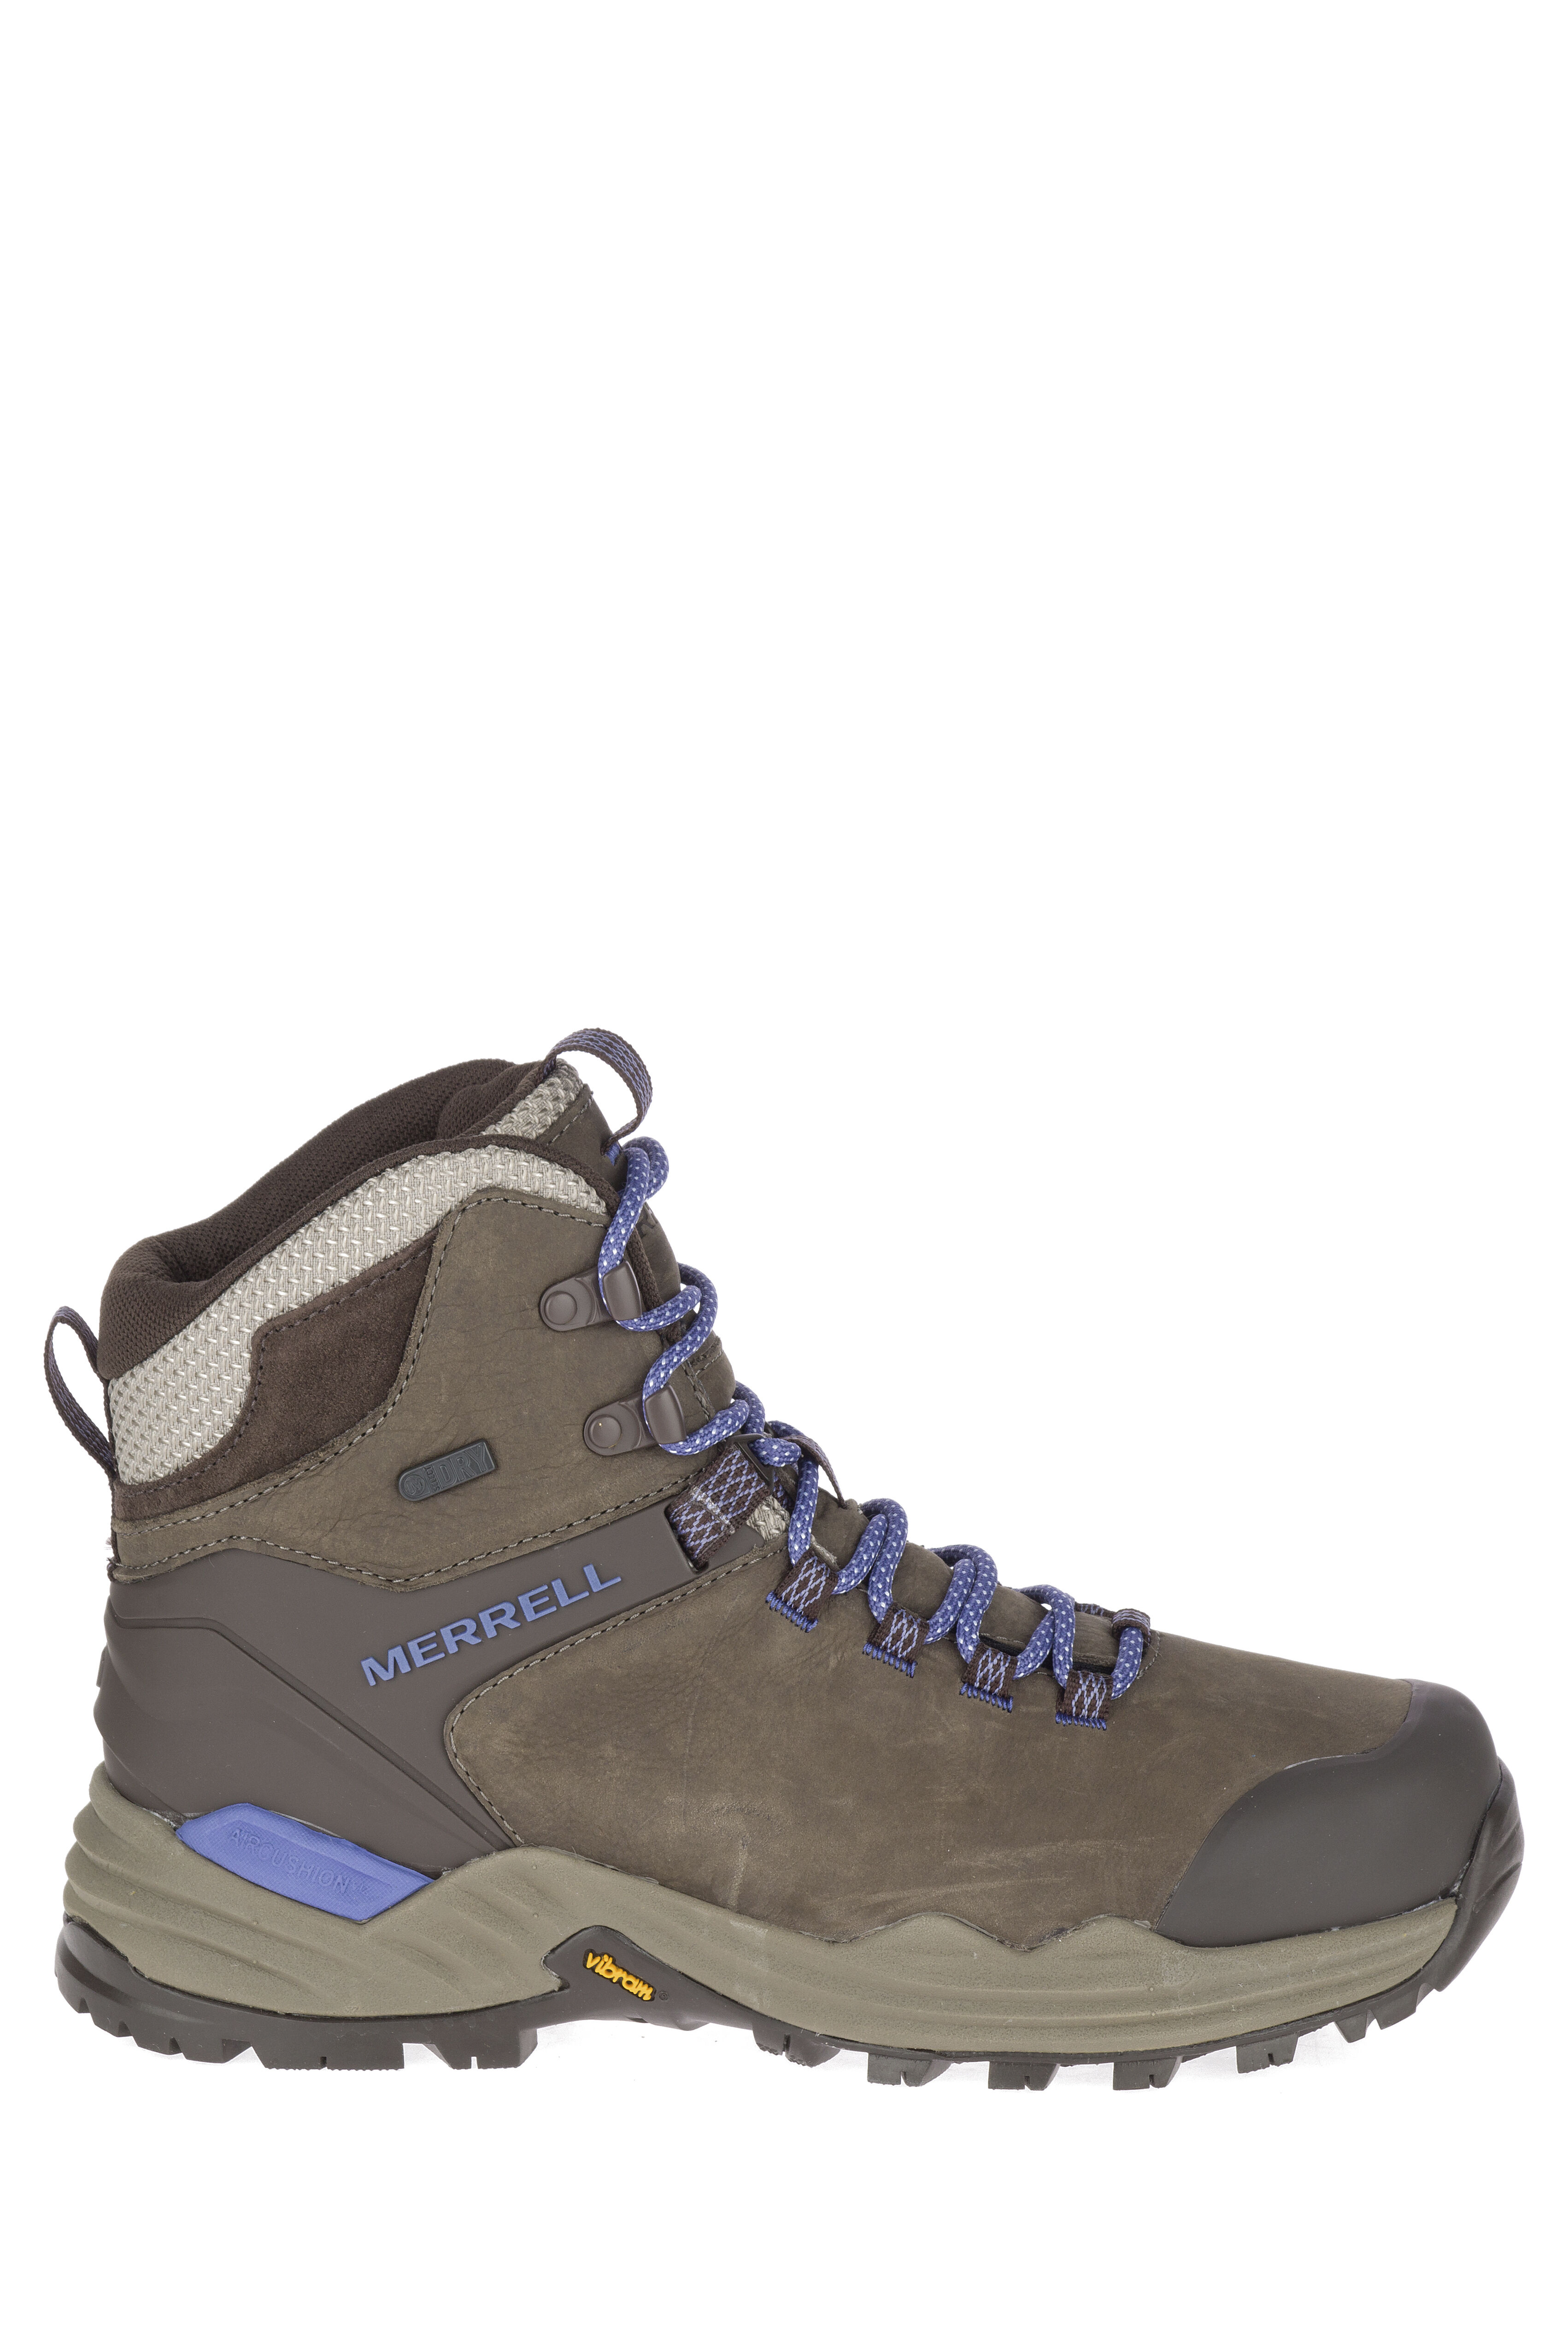 Merrell Phaserbound 2 Tall WP Hiking